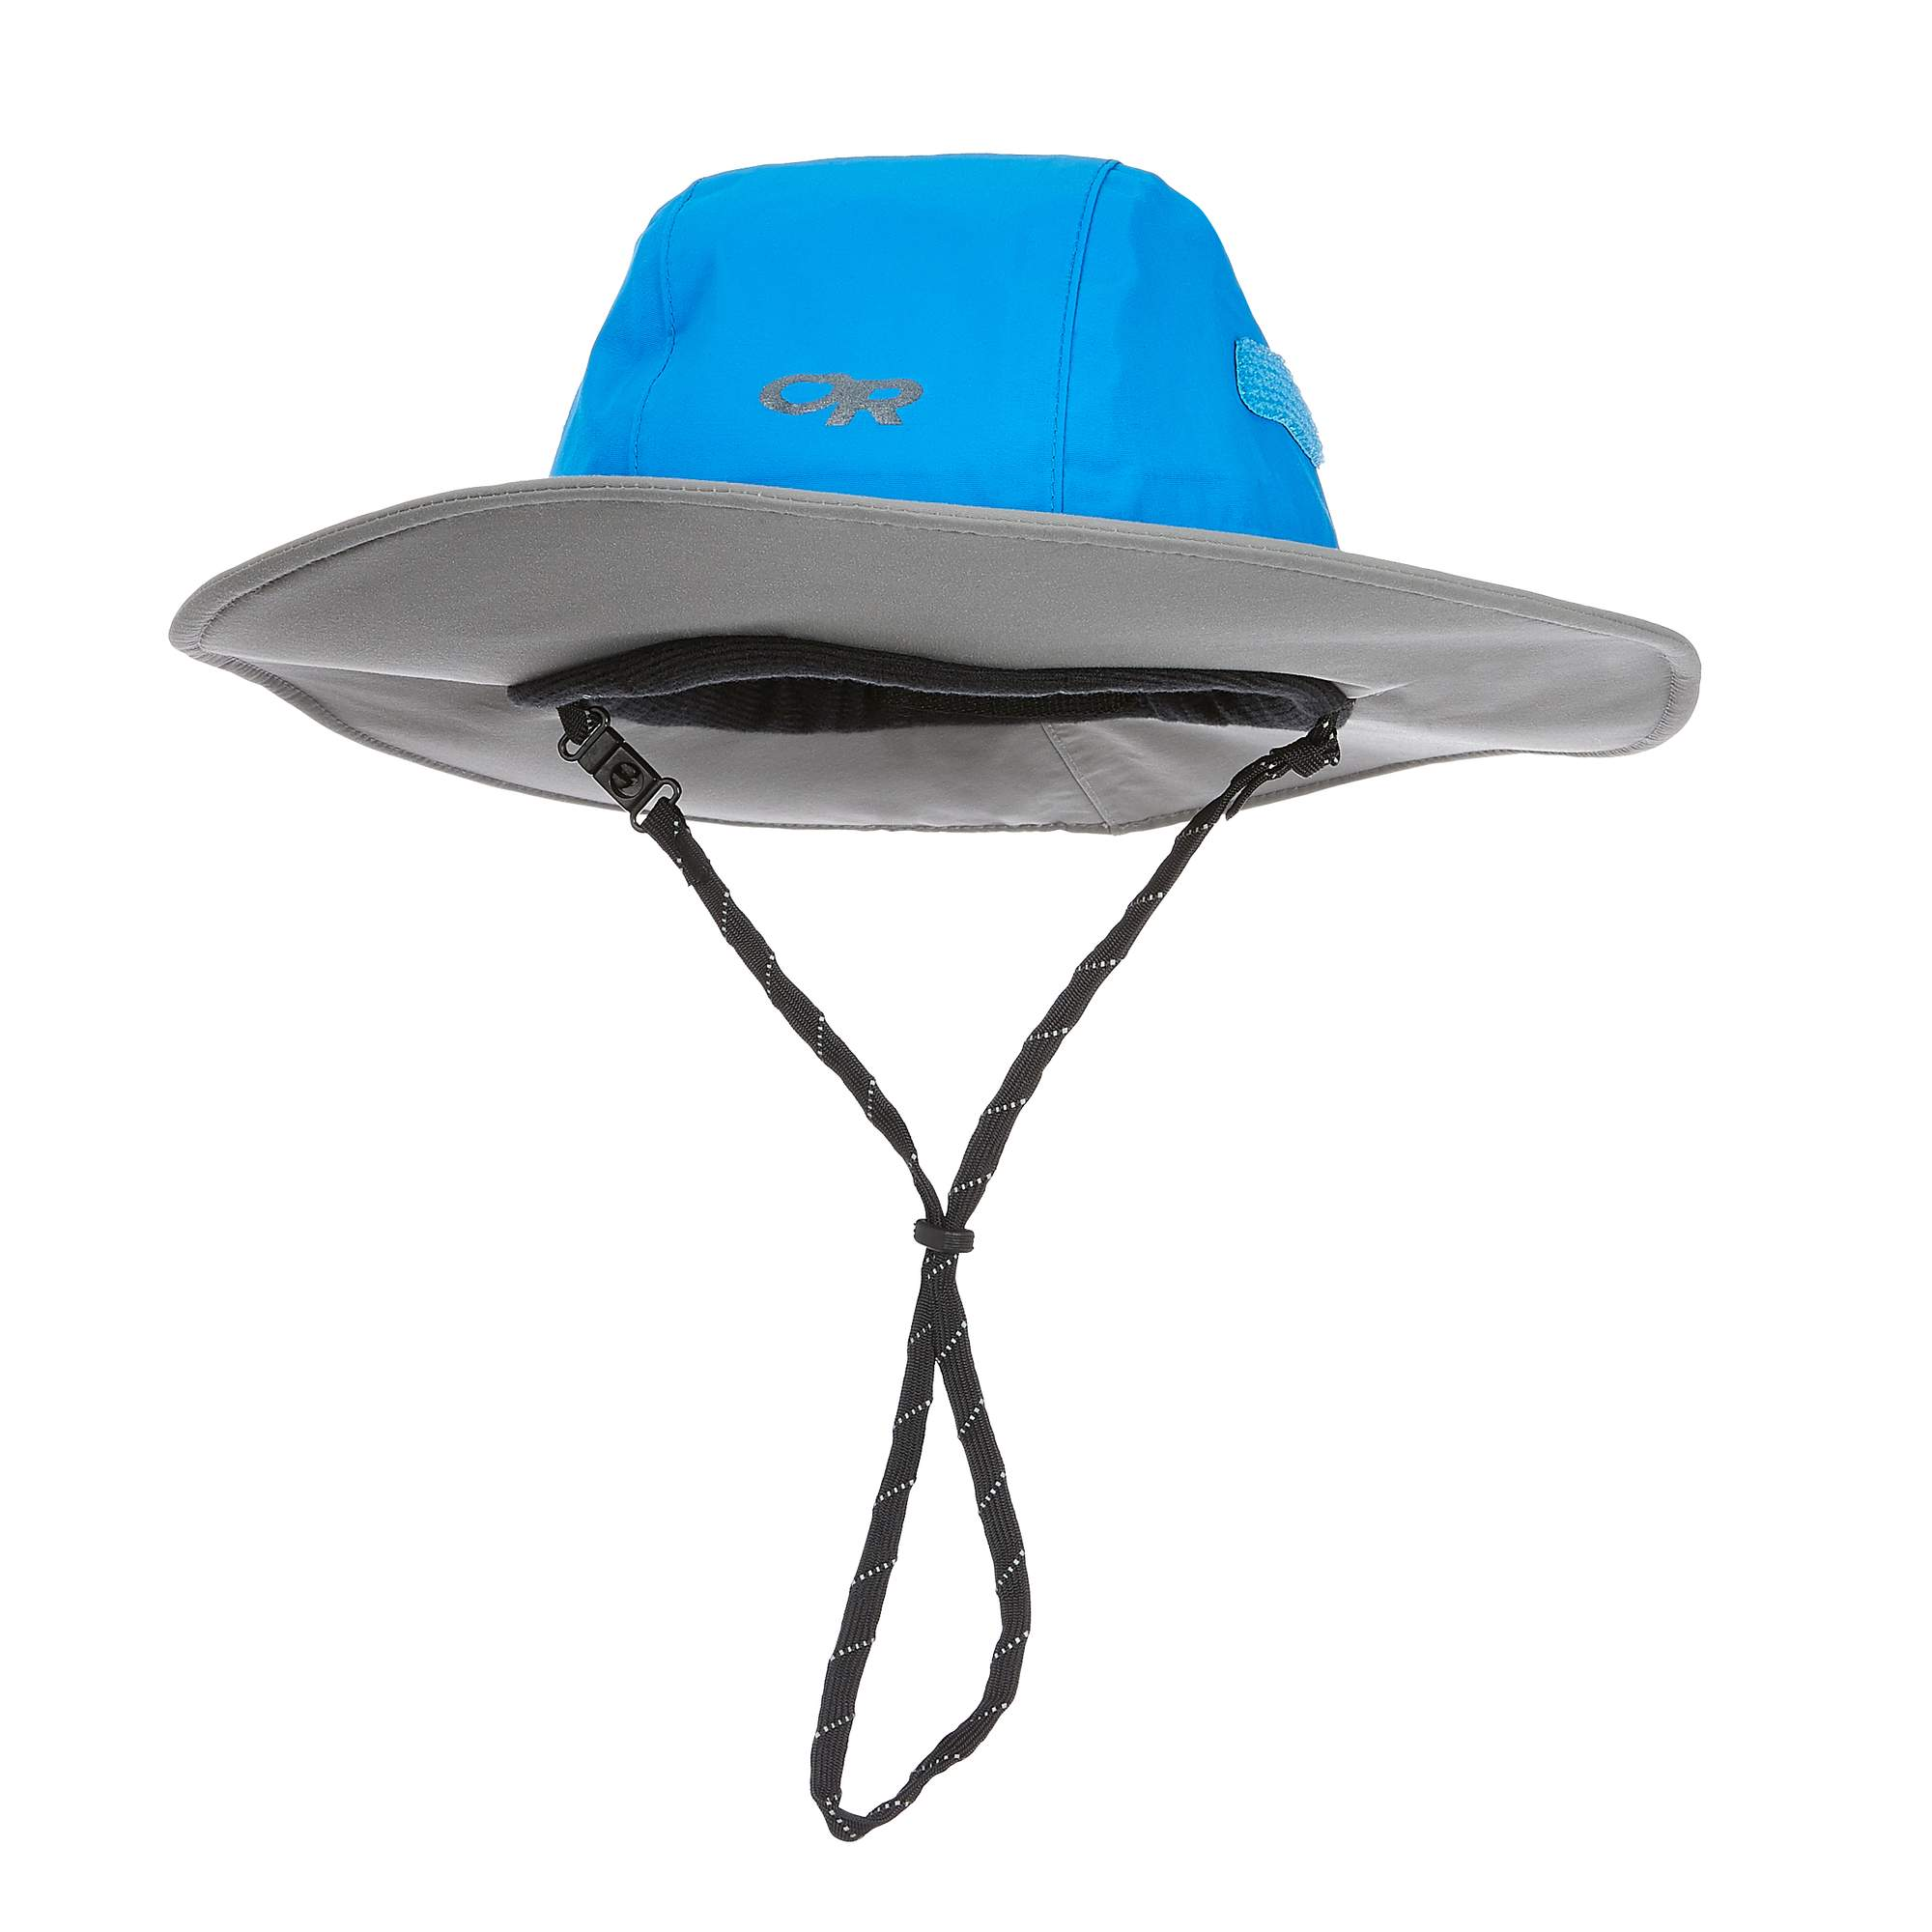 Outdoor Research Seattle Sombrero Kinder Gr. 47-51cm - Hut - blau|grau 264410 1215